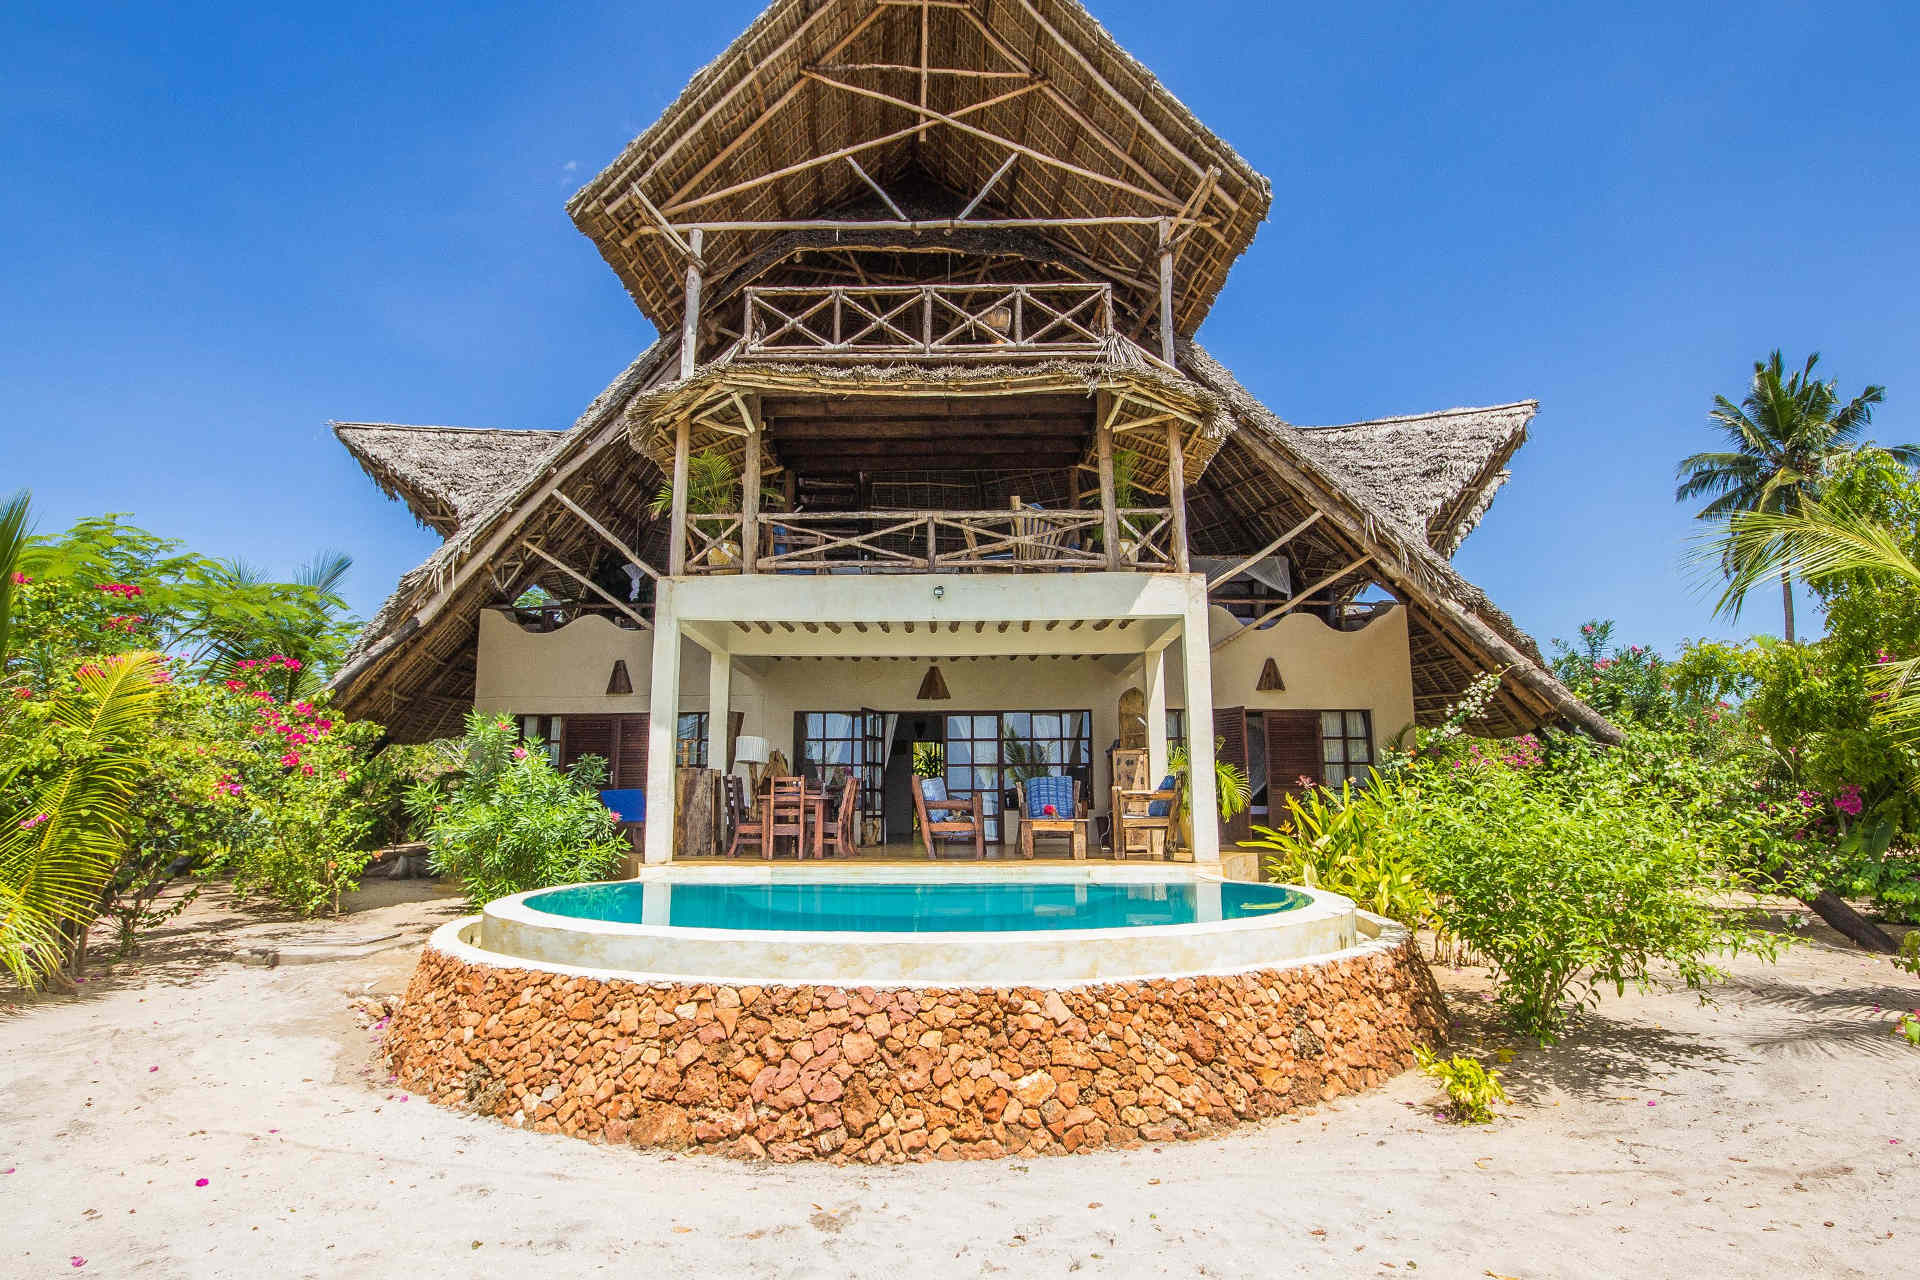 zanzibar-beach-private-villa-lisa